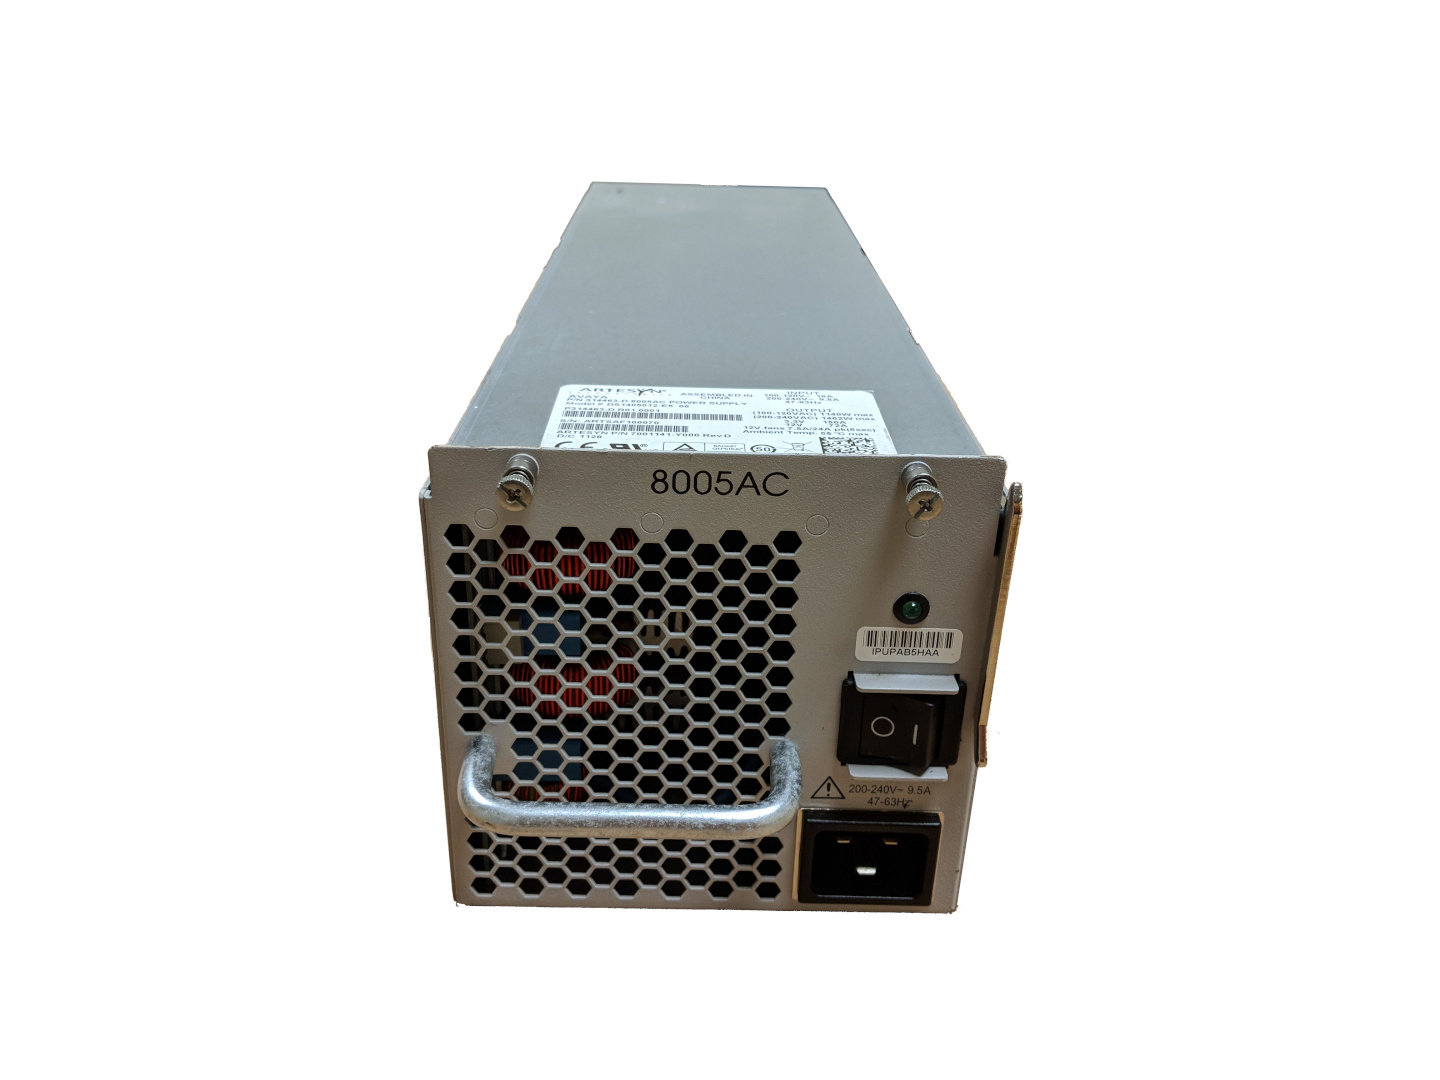 Nortel Artesyn 8005AC Power Supply DS1405012-E5